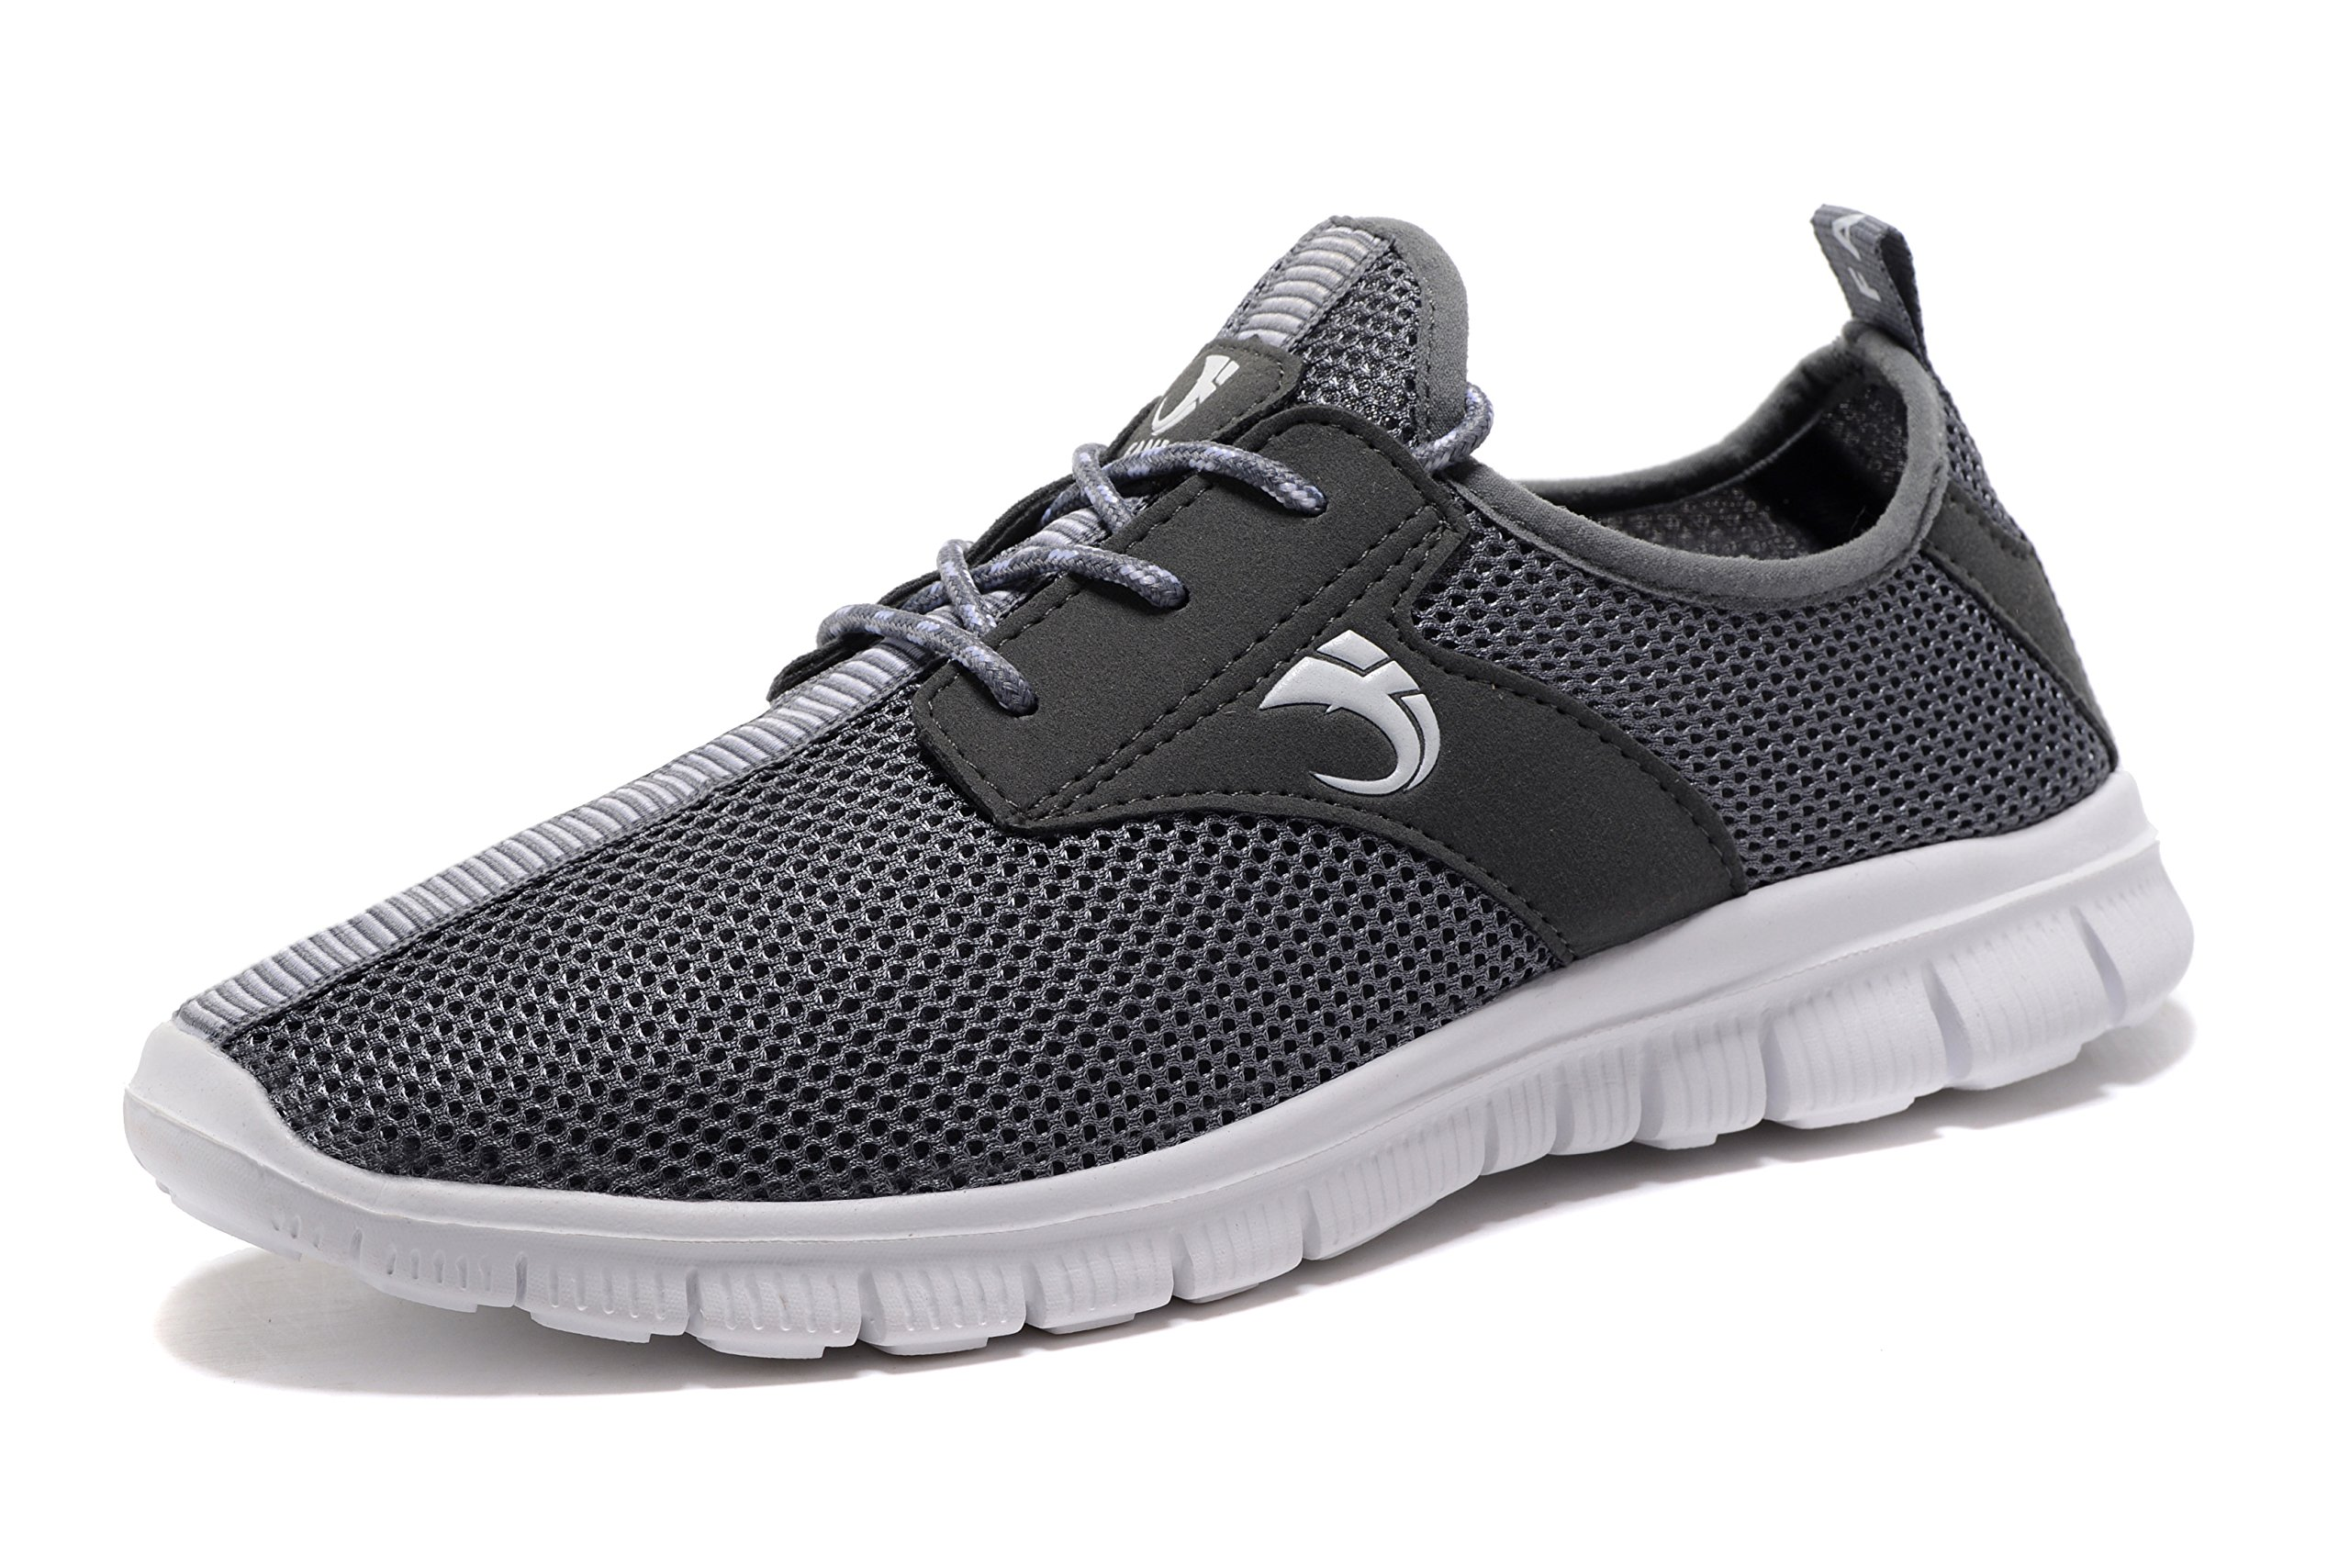 FANIC Men's Walking Shoes Workout Shoes Full Mesh Running Shoes Lightweight Comfortable Fitness Breathable Casual Sneaker (47 M EU / 12.5 D(M) US, Grey) by FANIC (Image #2)